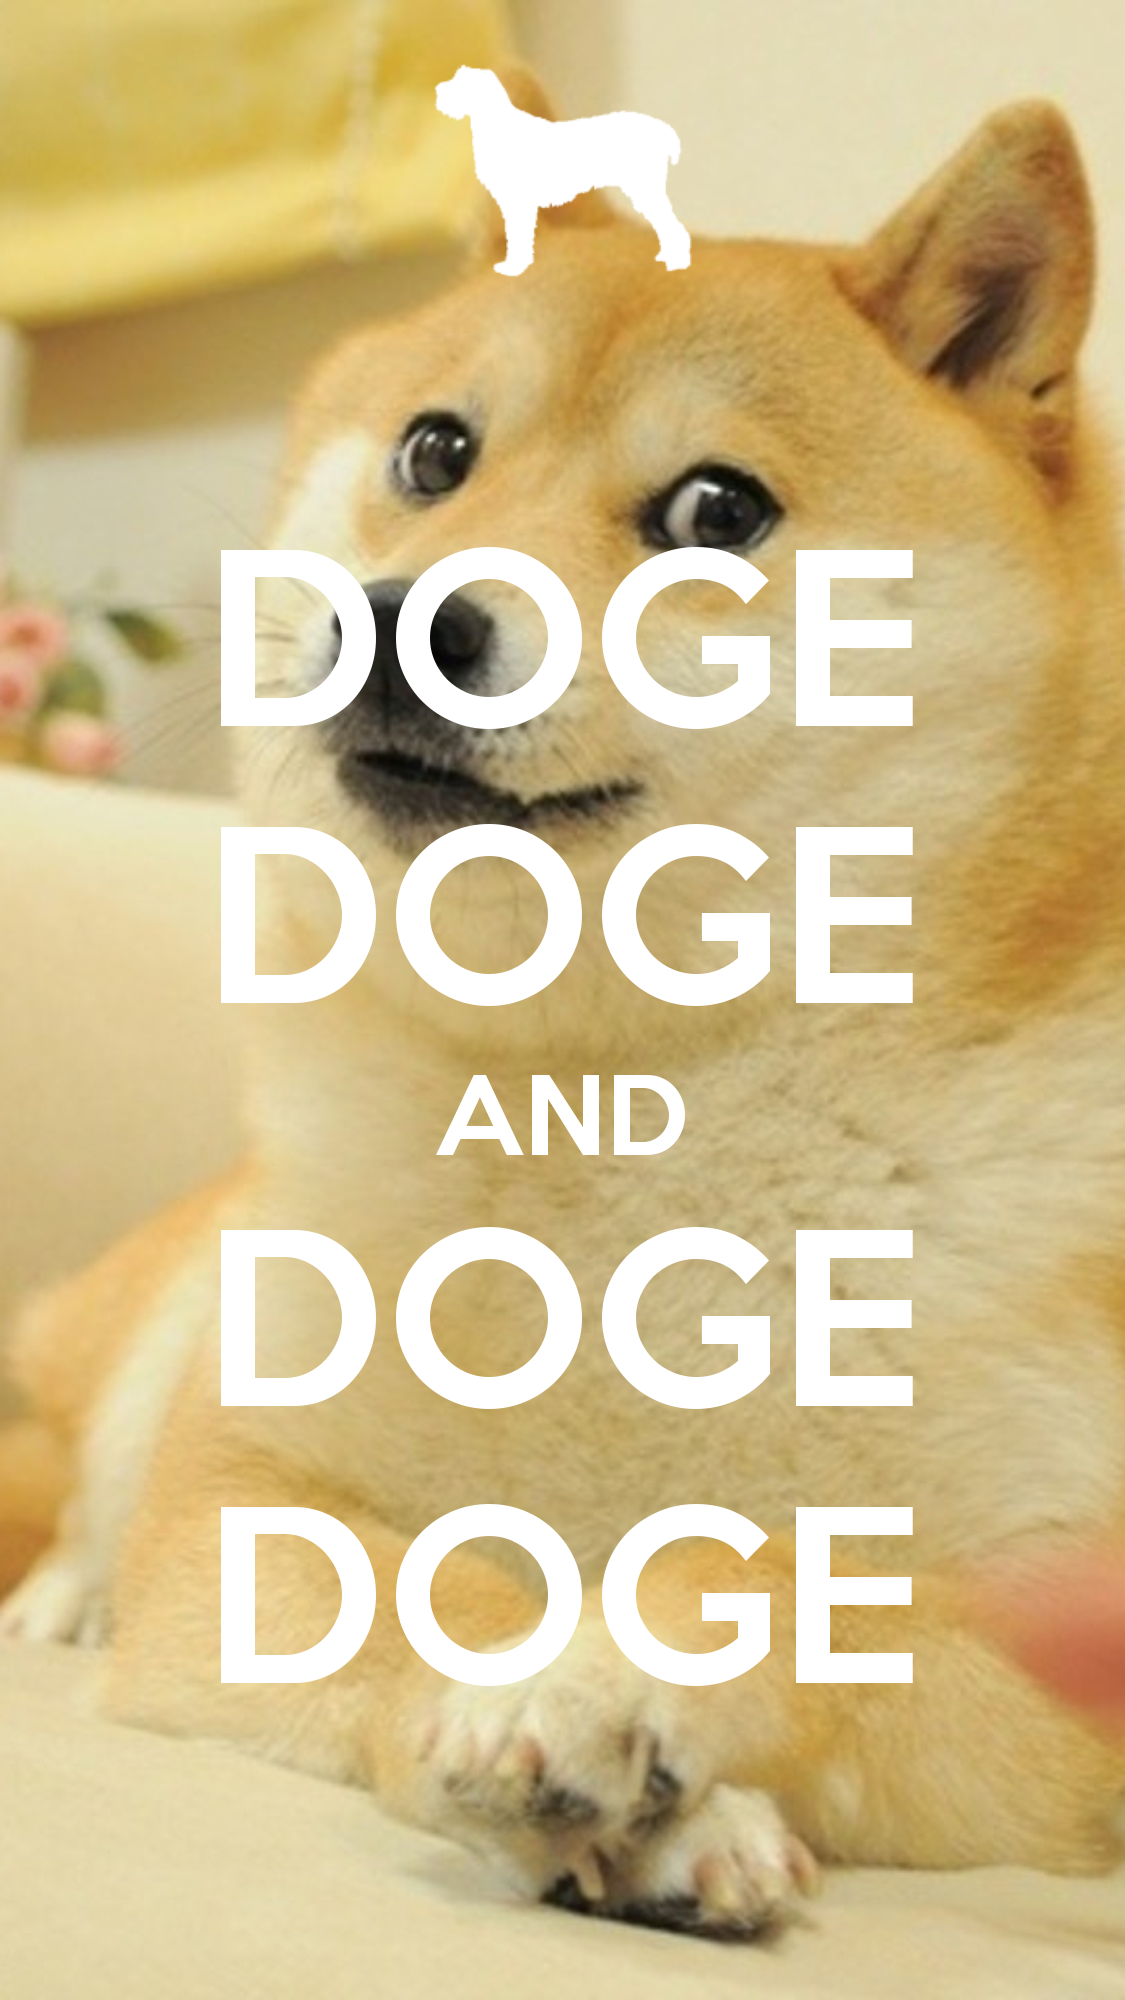 Doge Wallpaper Iphone Funny And